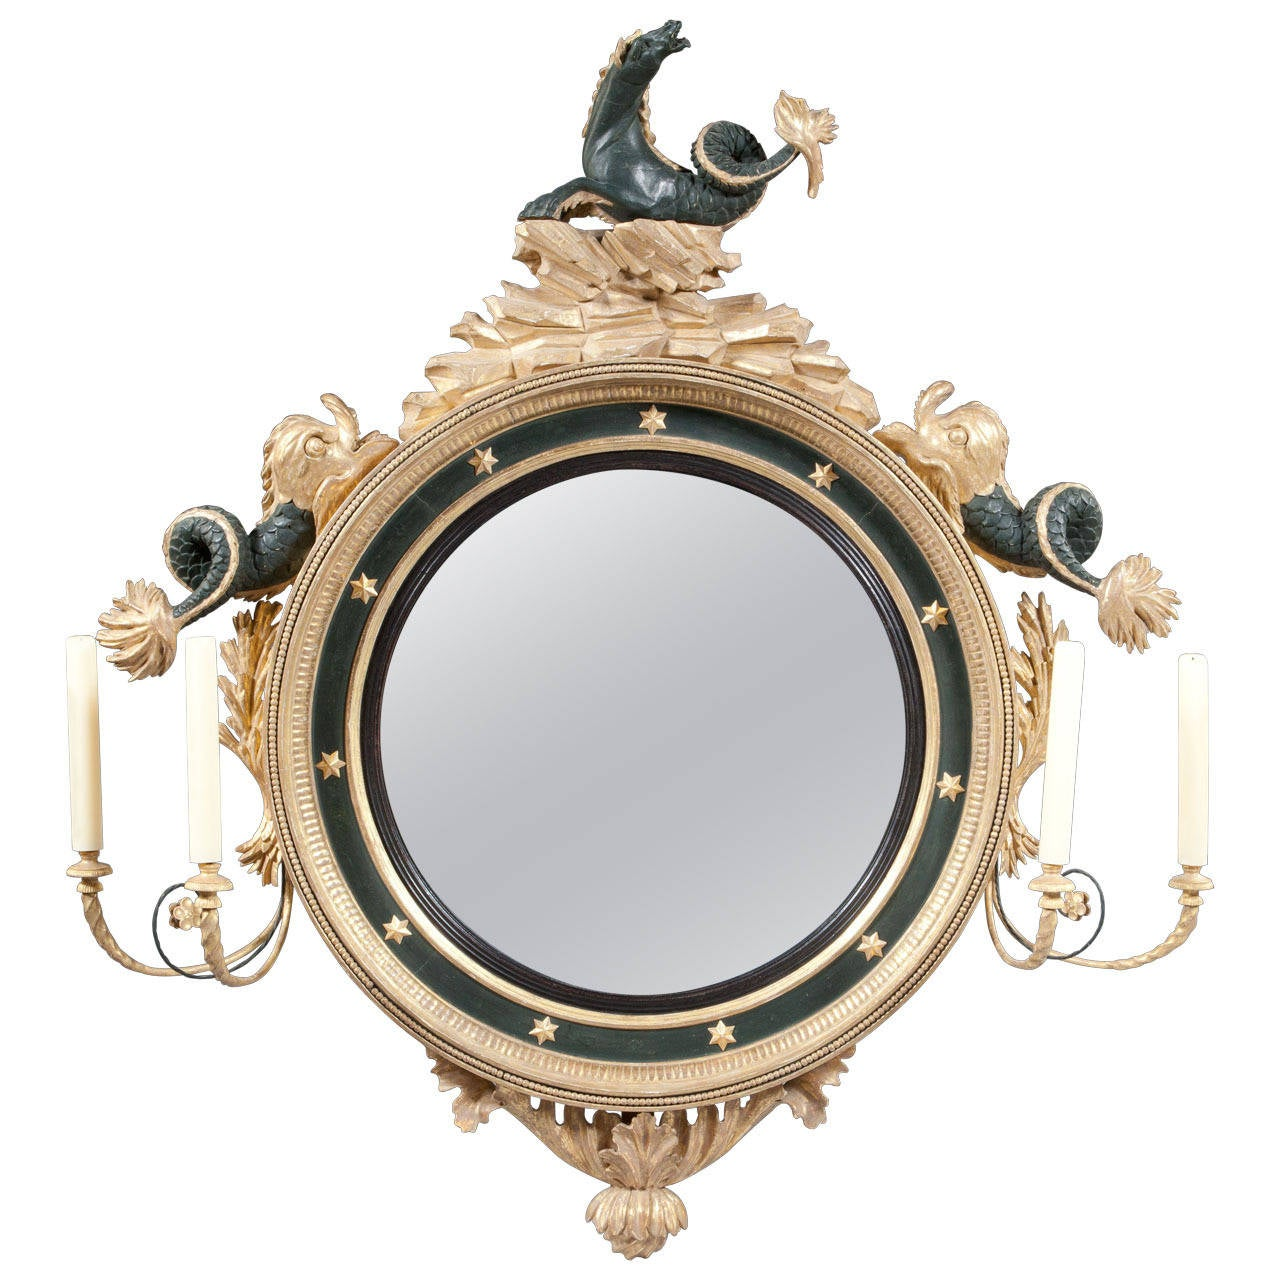 Fine regency convex mirror at 1stdibs for Convex mirror